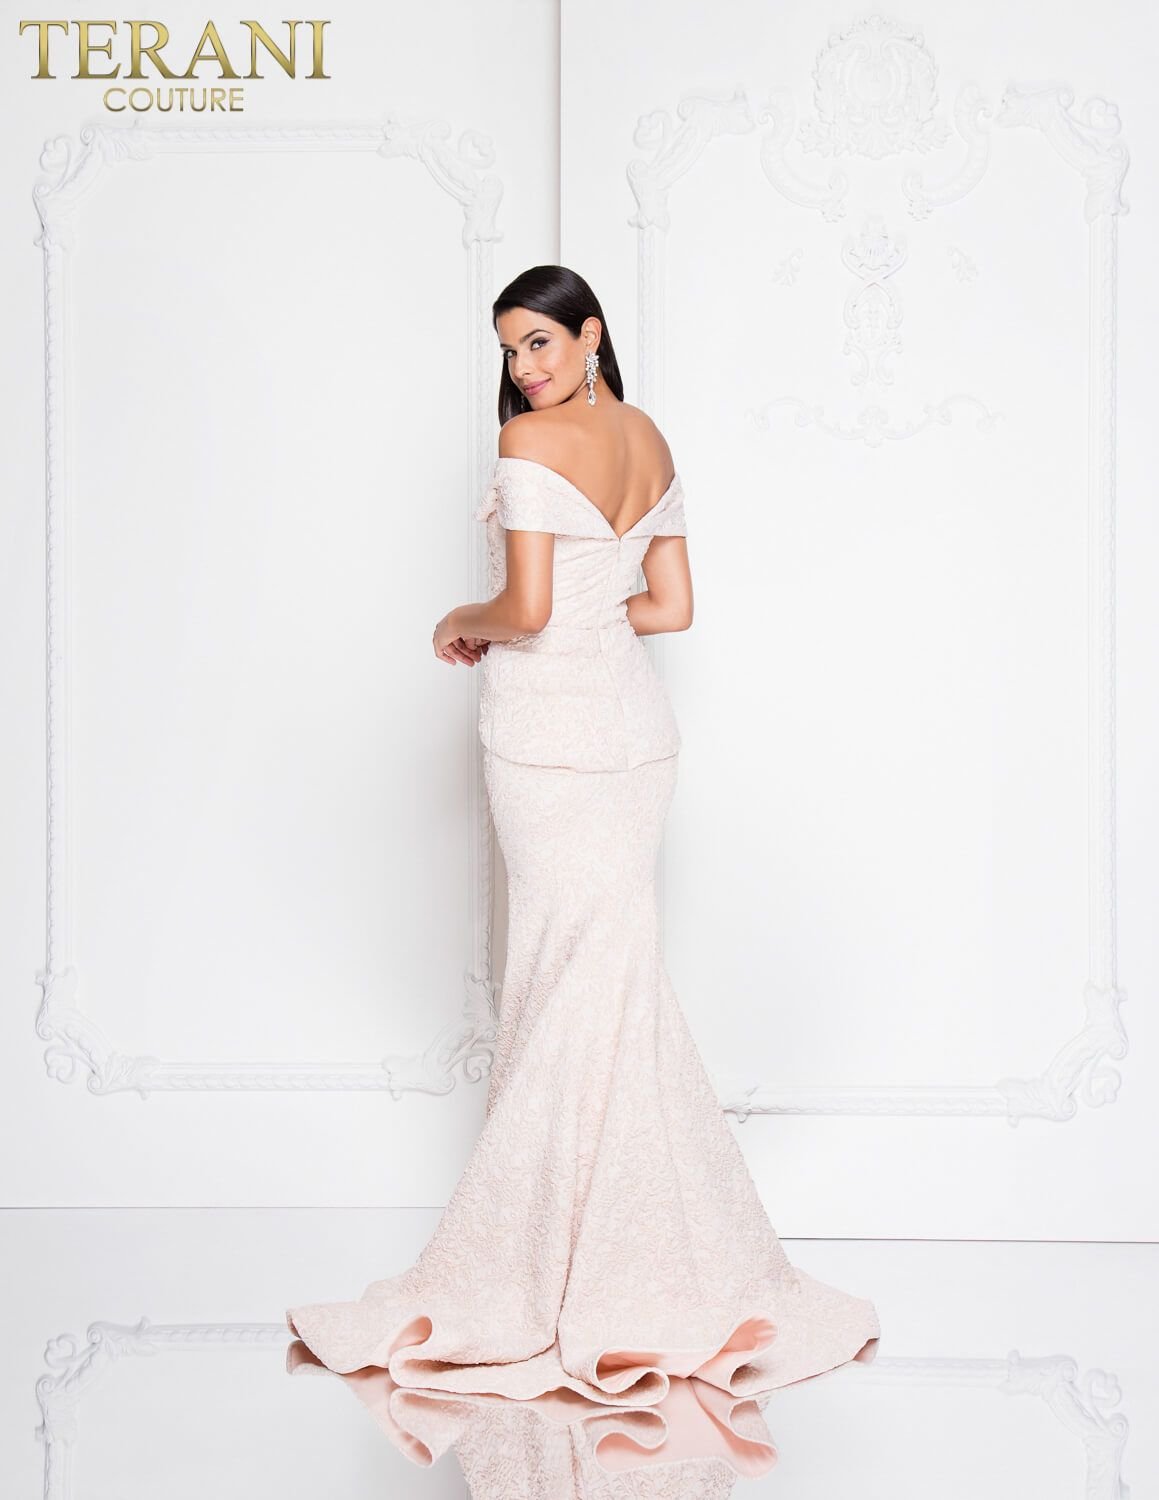 27123dba8da71 Terani Couture - 1812M6657 Off-Shoulder Brocade Gown in 2019 | Pink Dresses  | Couture dresses, Terani couture, Terani dresses